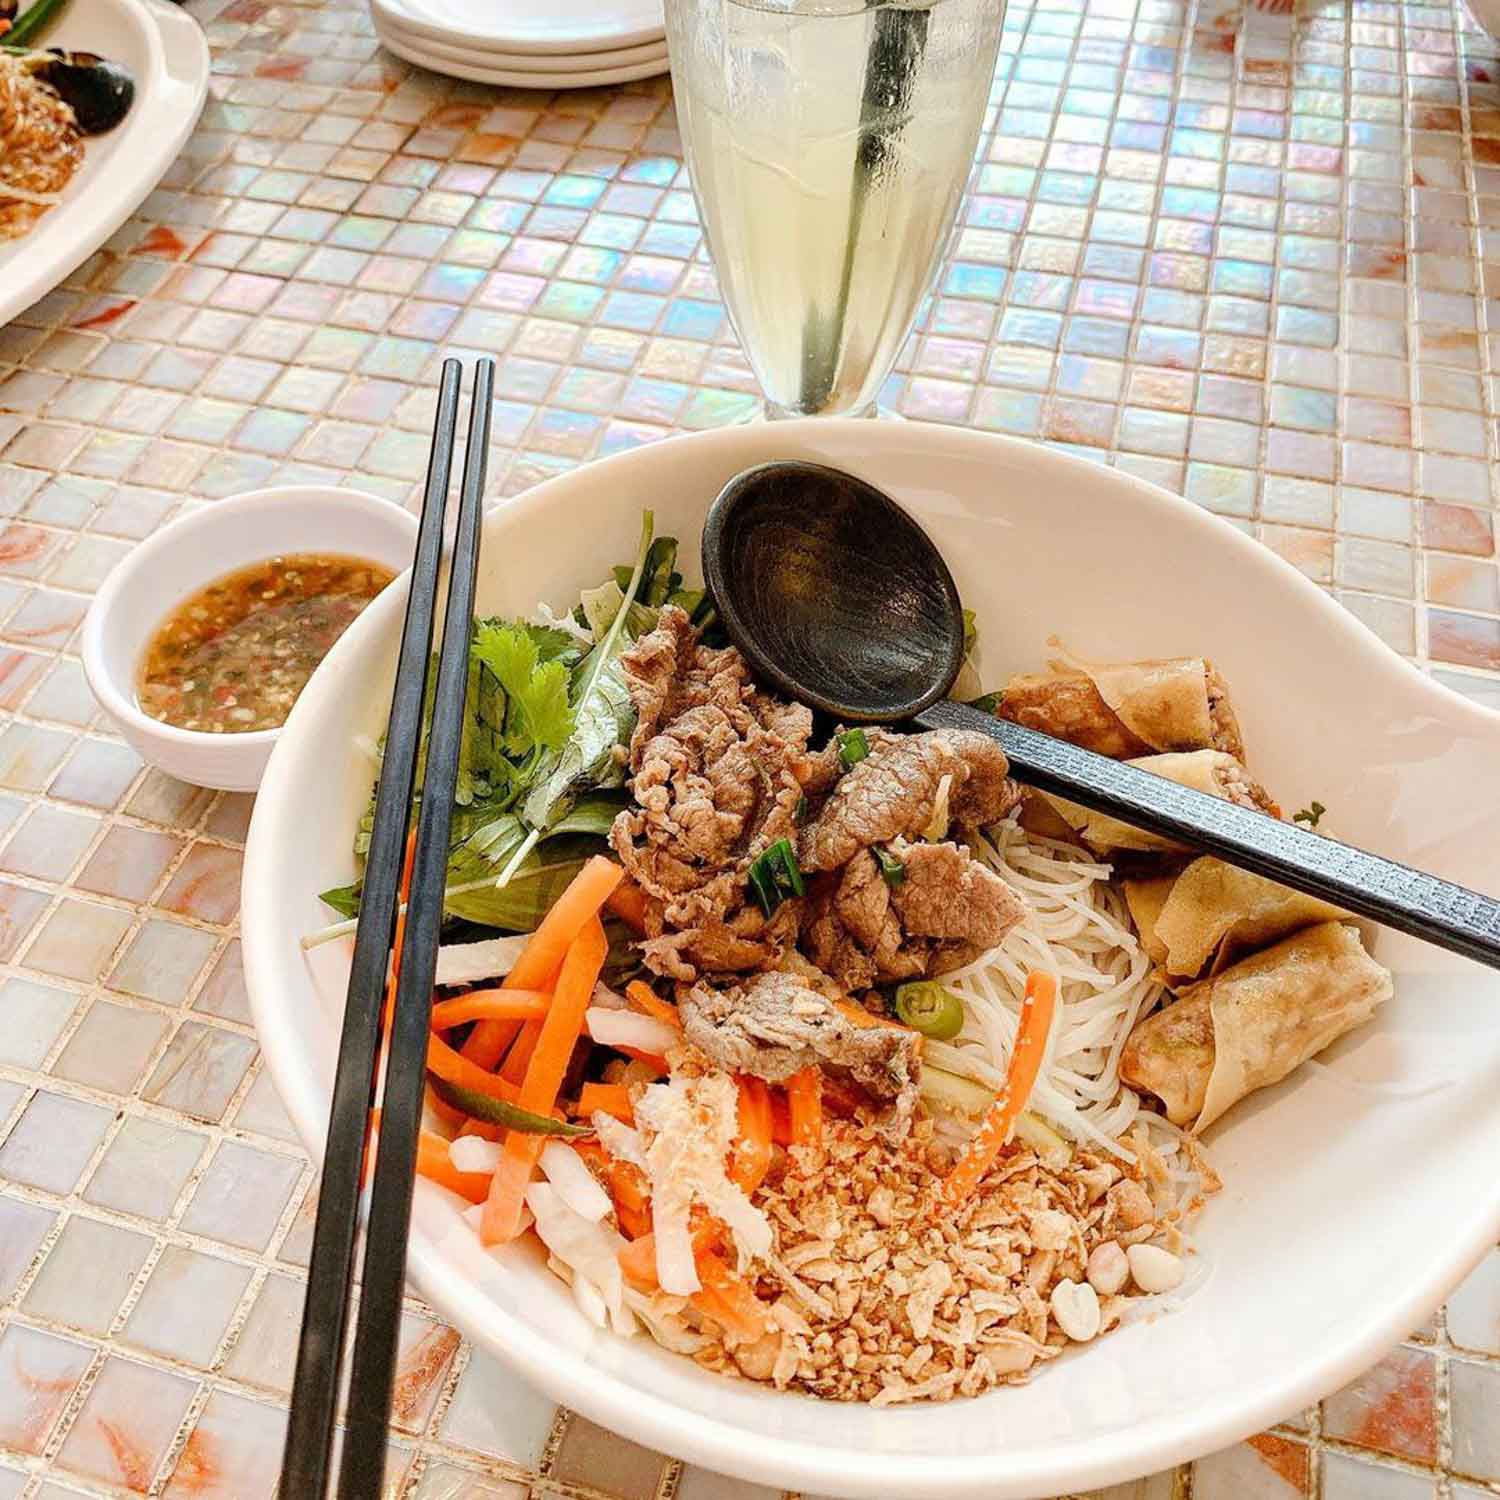 Halal Food Delivery Places - So pho